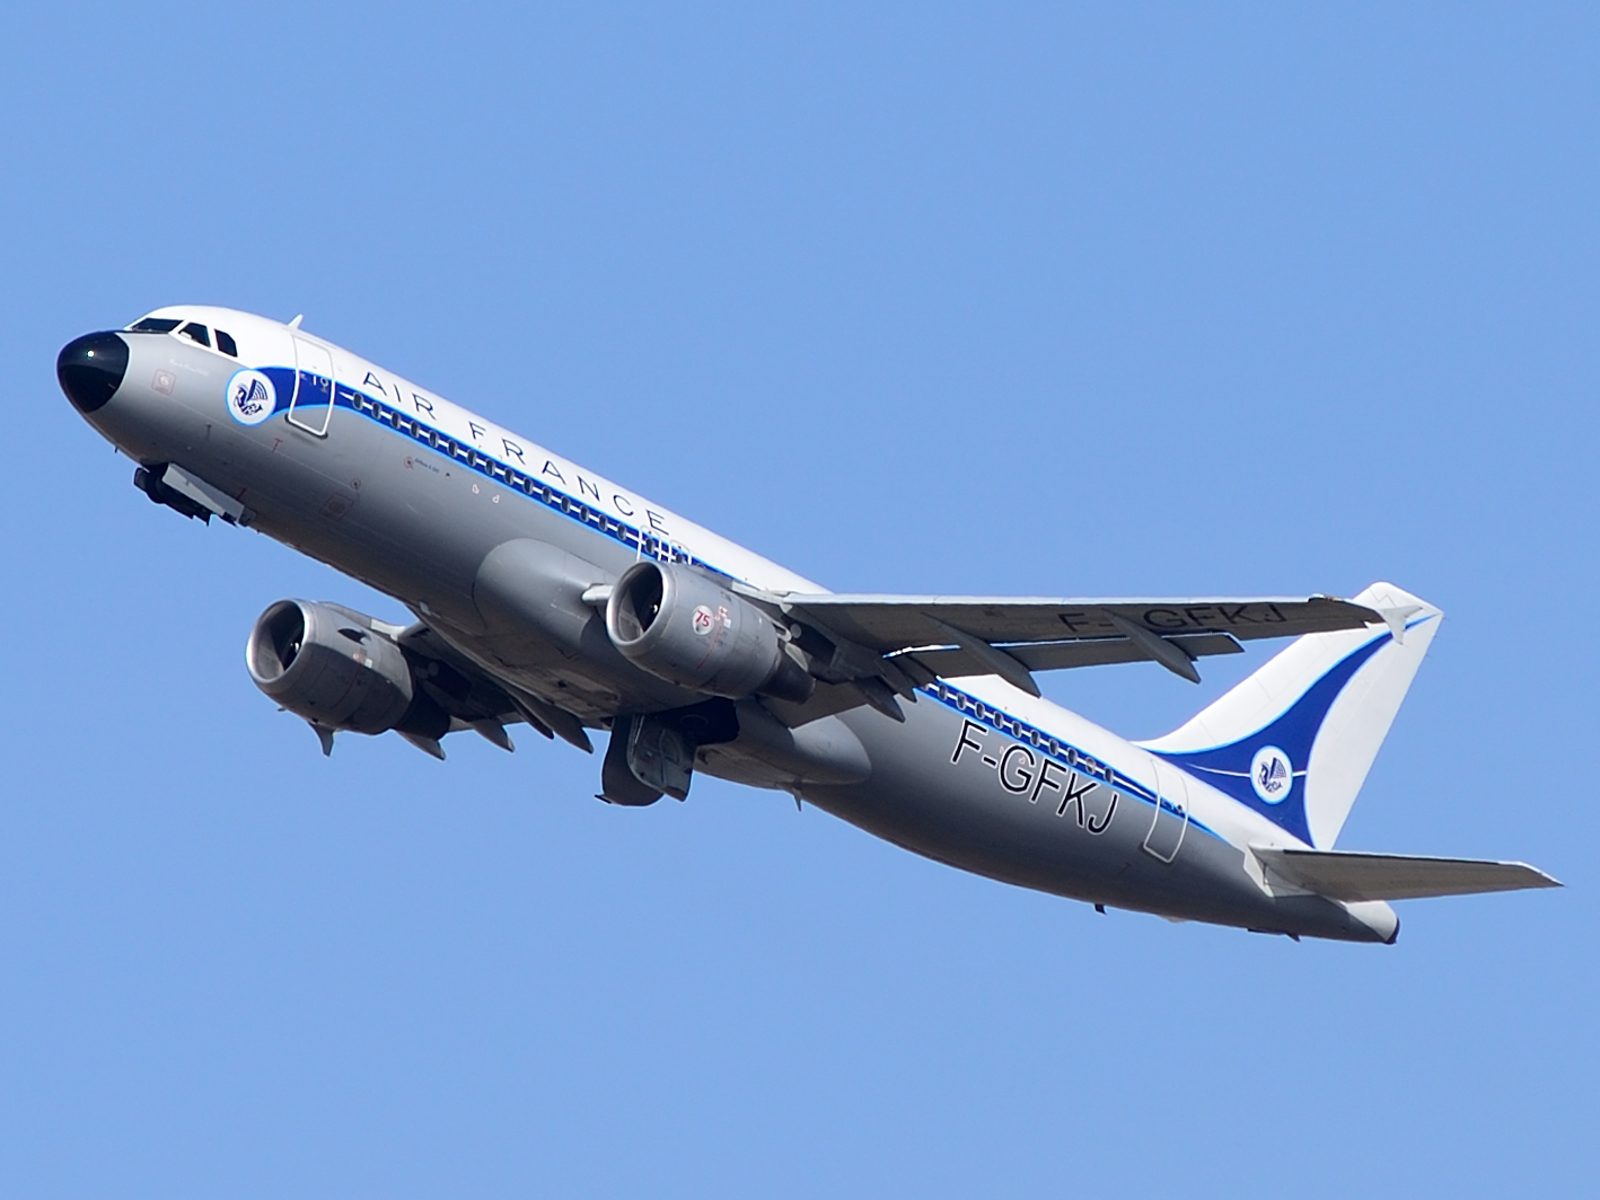 Airbus A320-200 wearing the retro livery